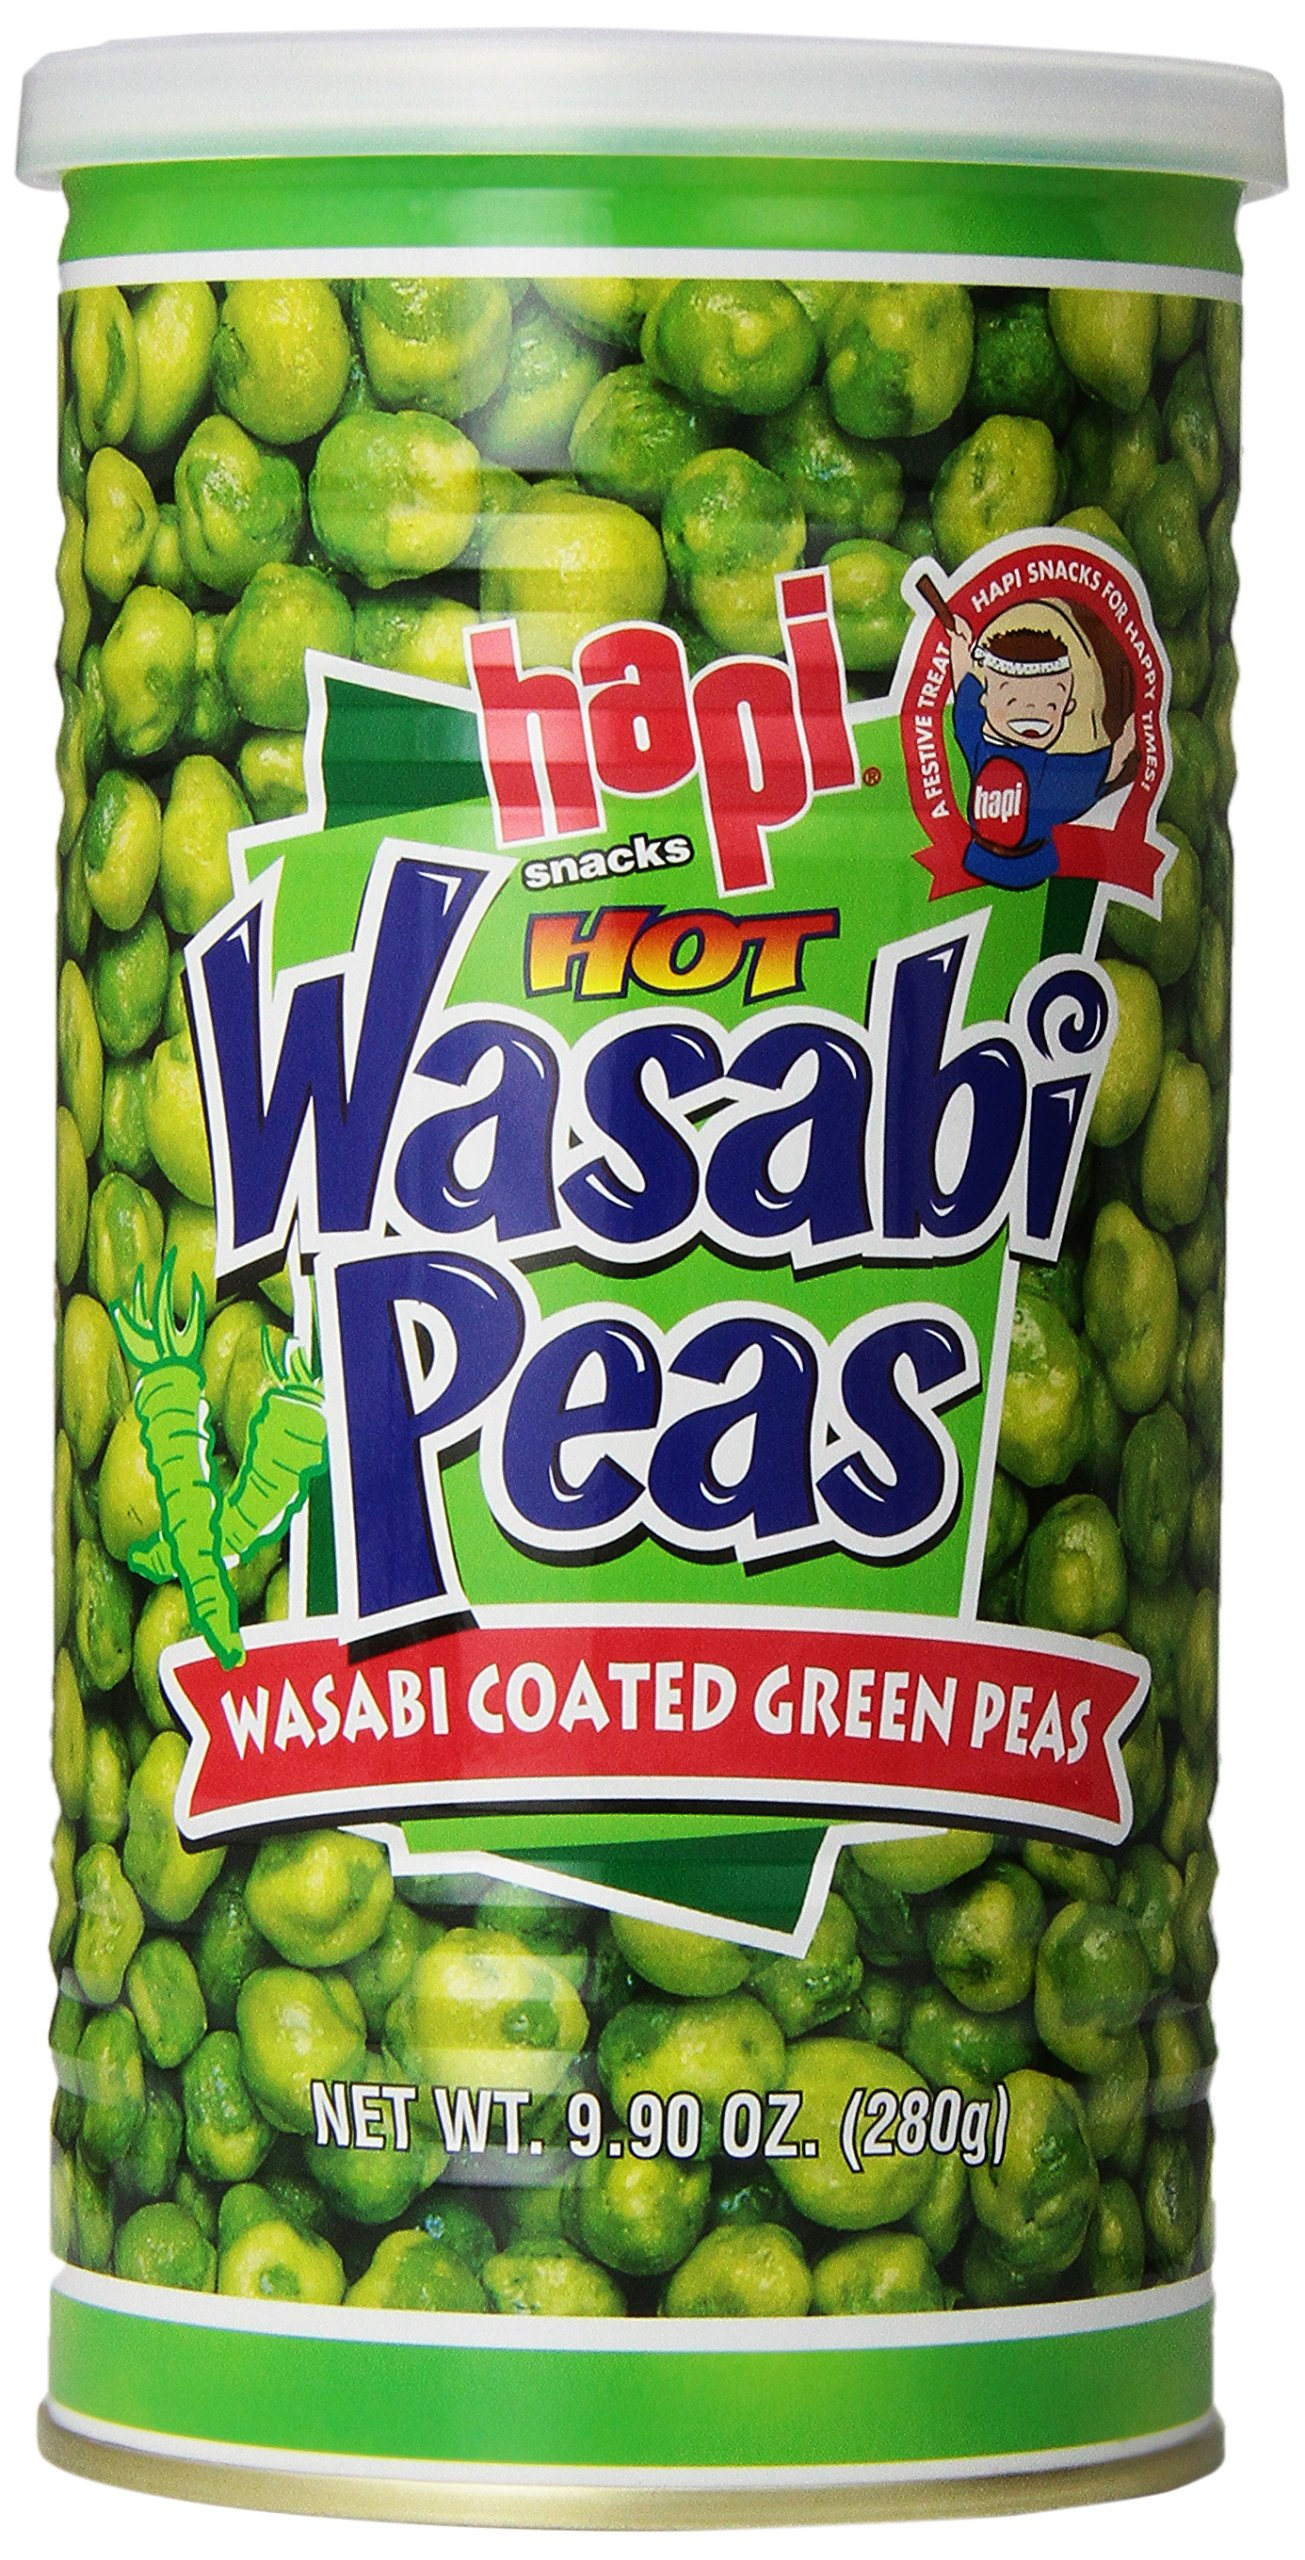 Hapi Snacks Hot Wasabi Peas 9.90oz by HAPI (Image #1)